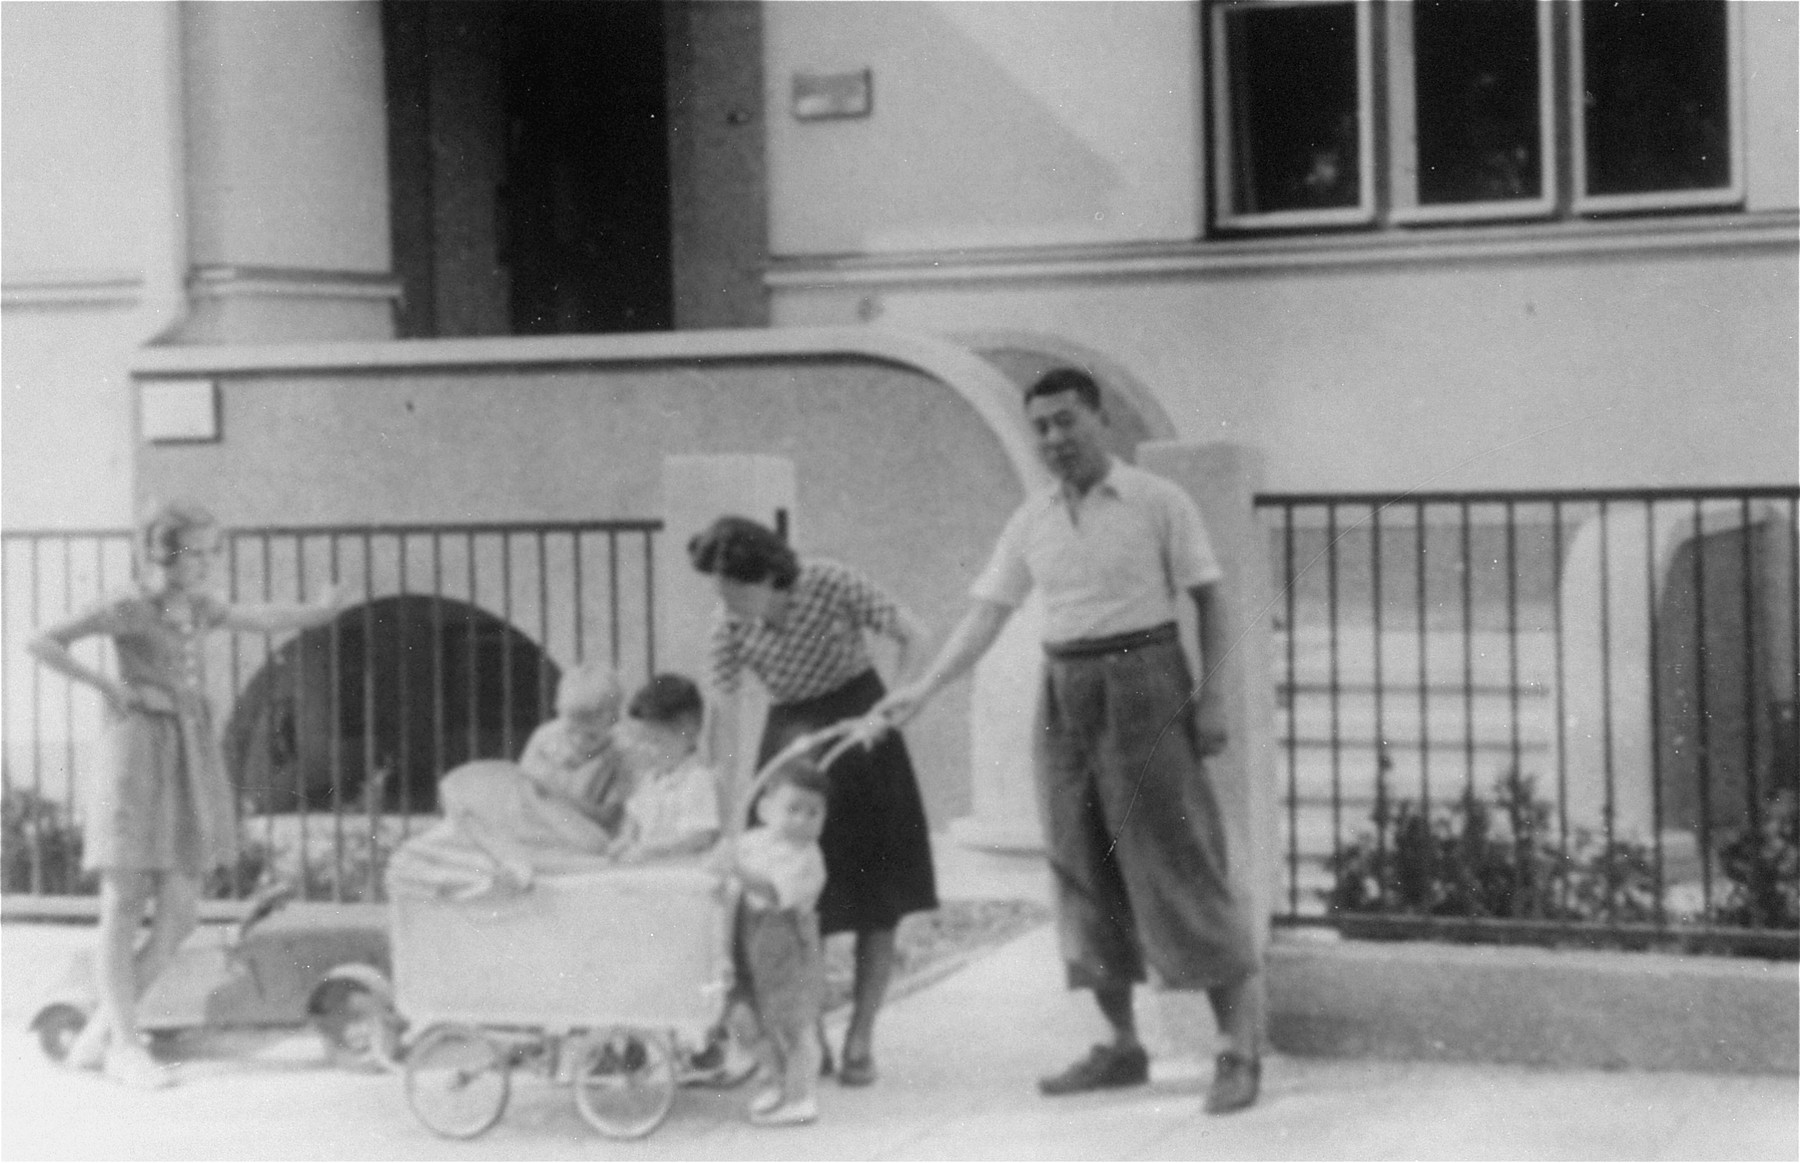 The Sugihara family in front of the Japanese consulate in Kaunas.    In the baby carriage is the Sugihara's third son Haruki, who was born in Kaunas and died of leukemia in 1947.